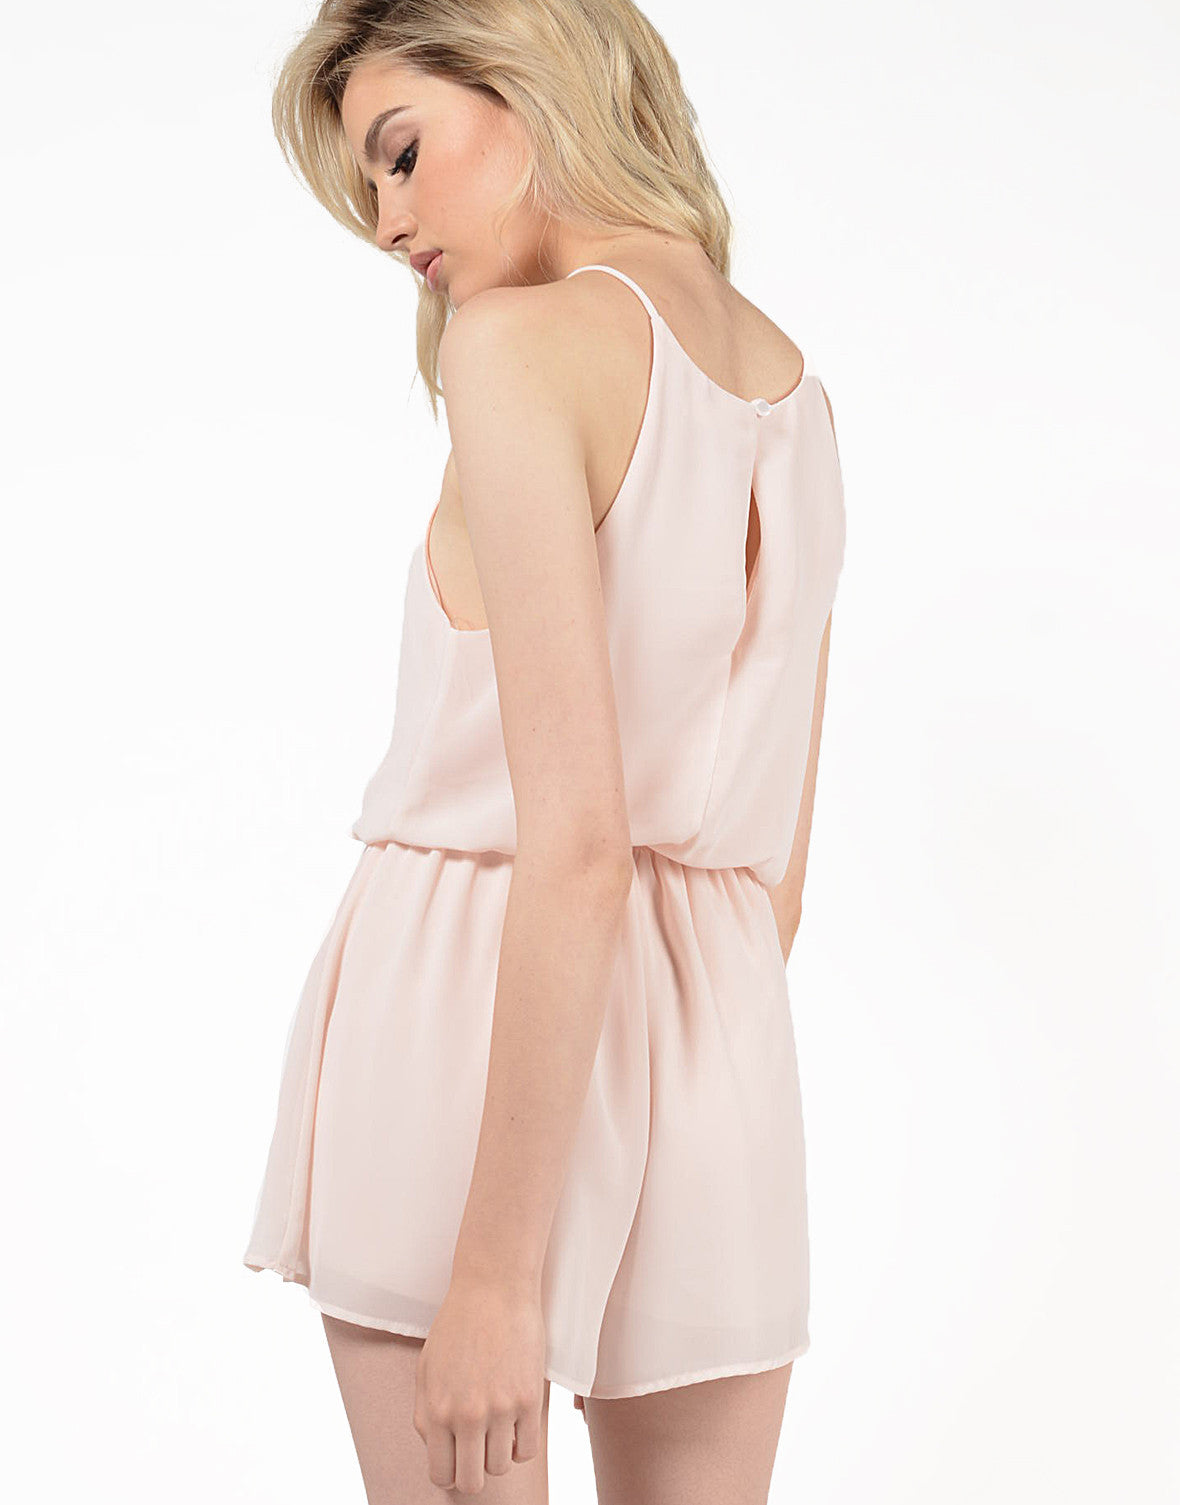 Detail of Chiffon High Neck Romper